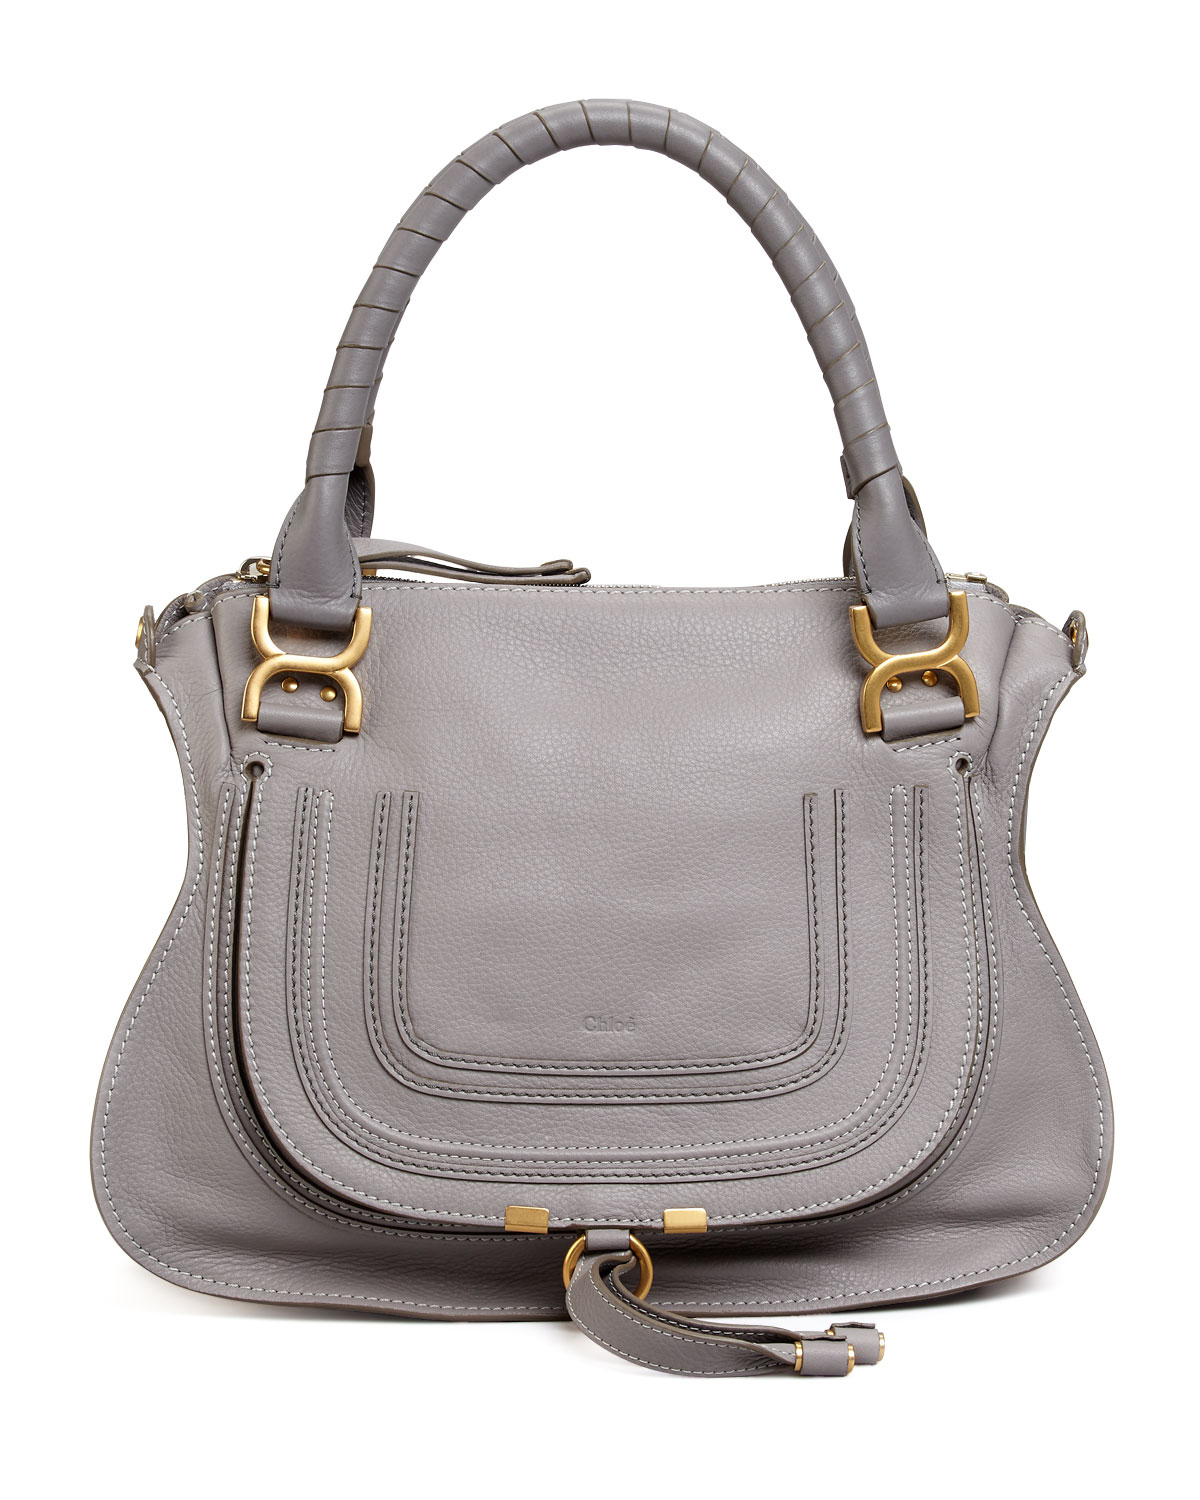 d358ae921b5 Chloe Marcie Medium Satchel Bag